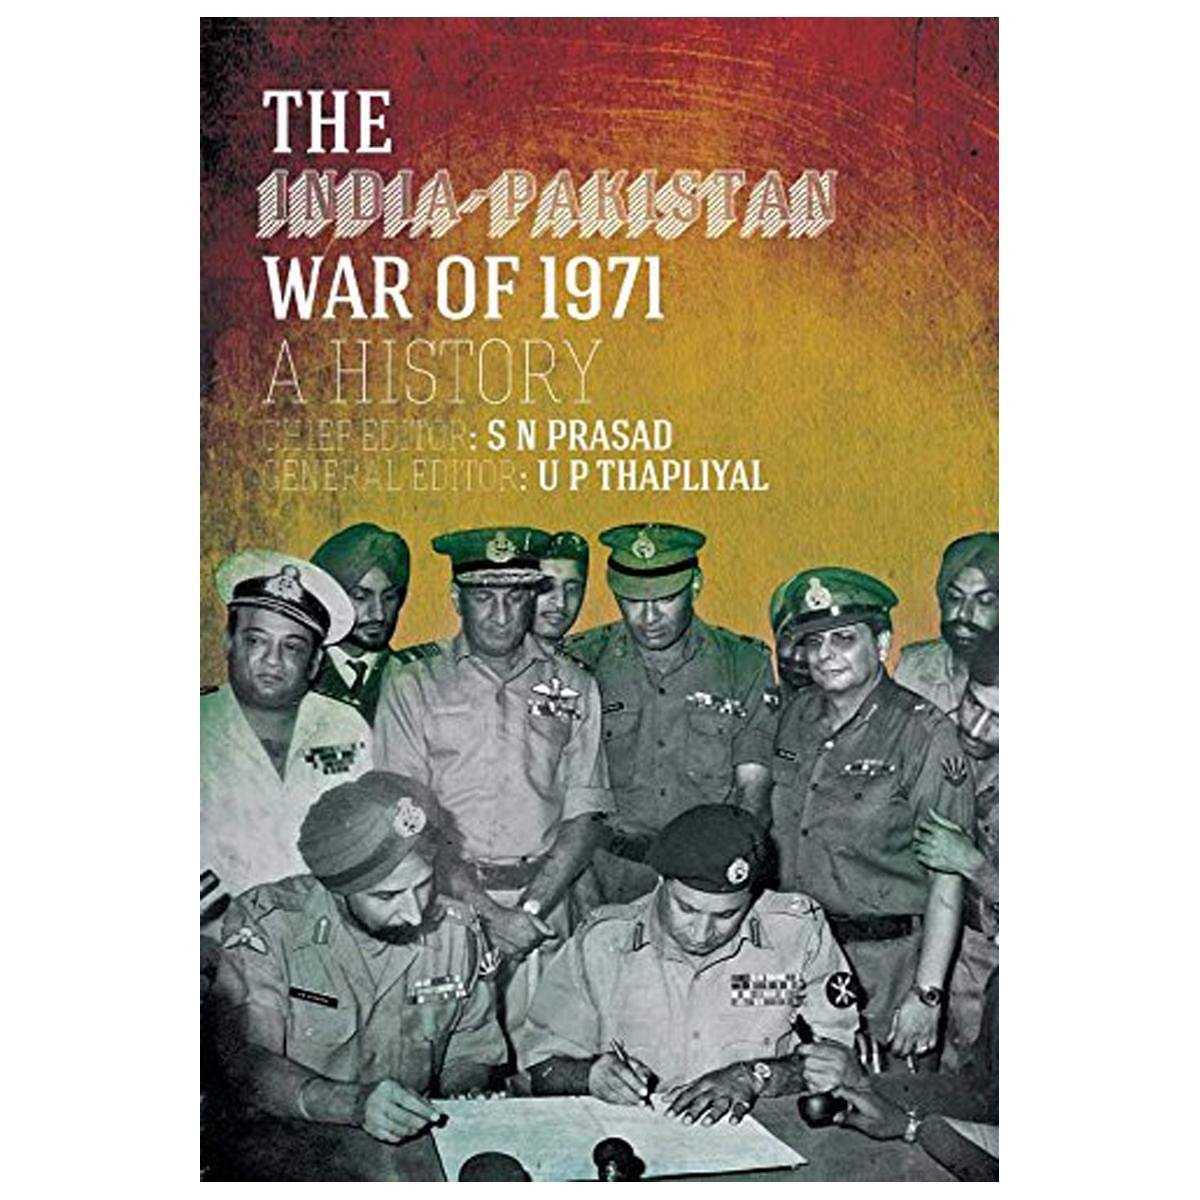 Buy The India-Pakistan War of 1971: A History Book Online at Low